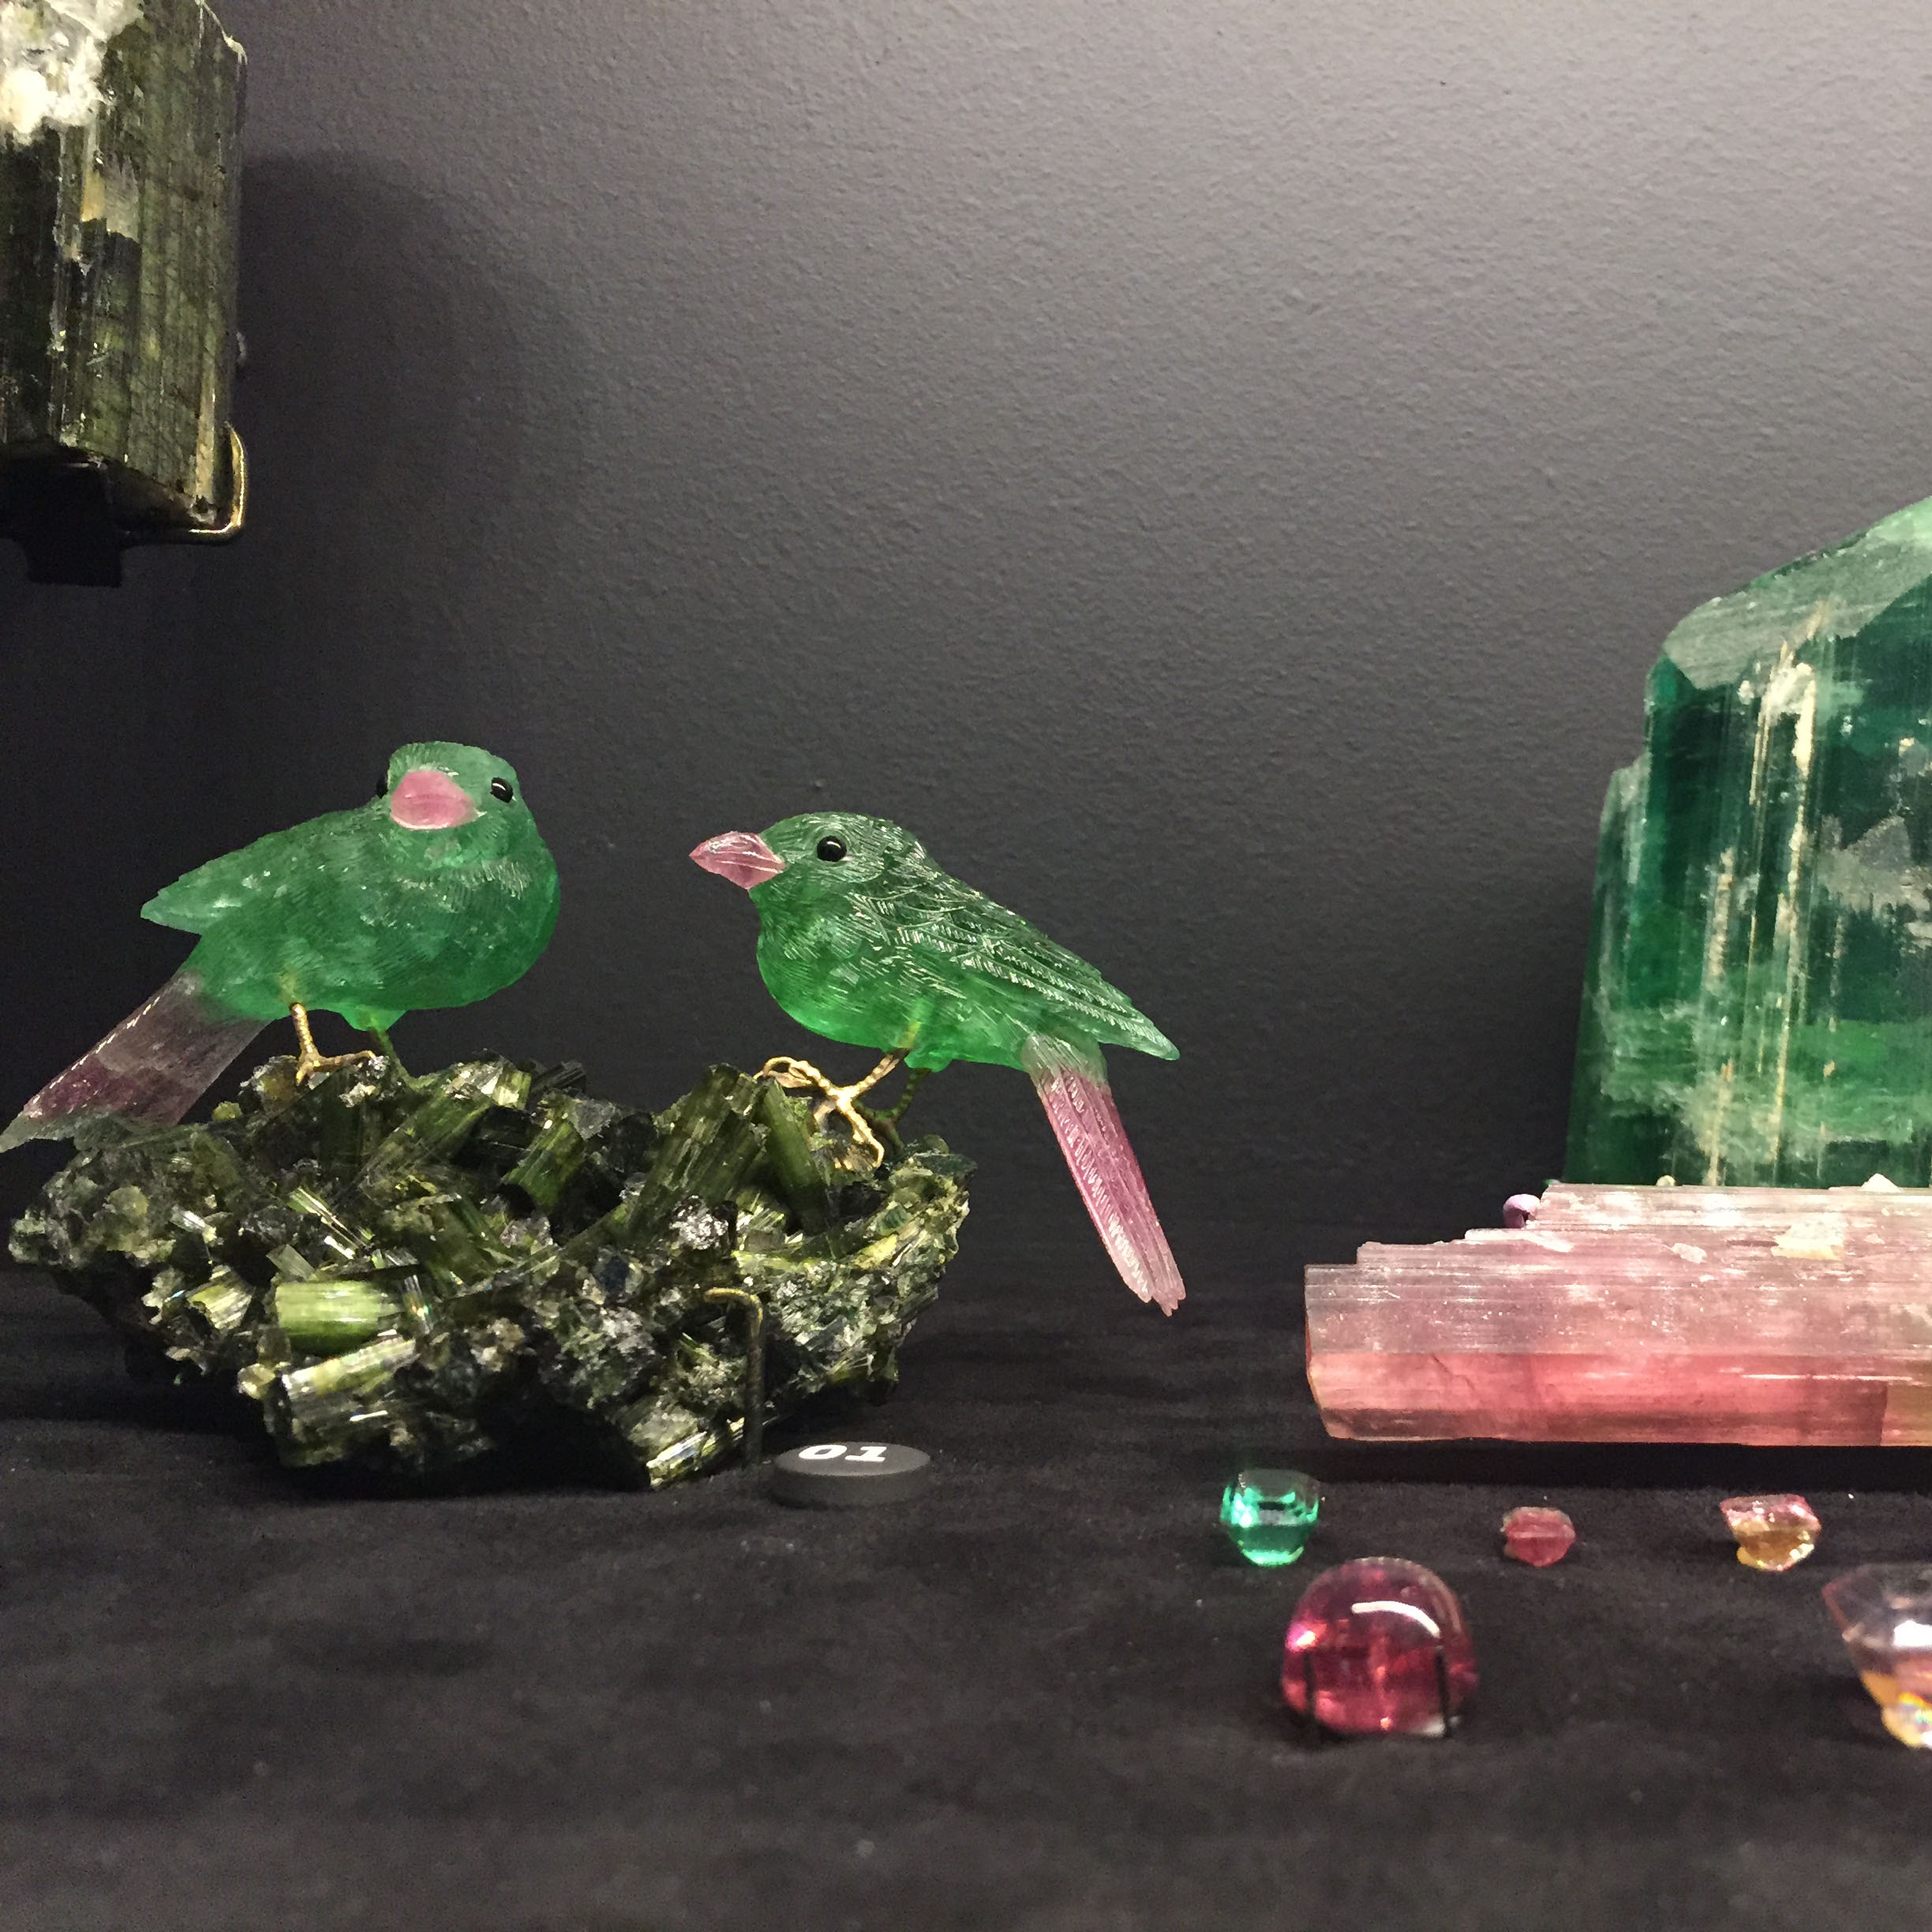 Bird carvings made of tourmaline